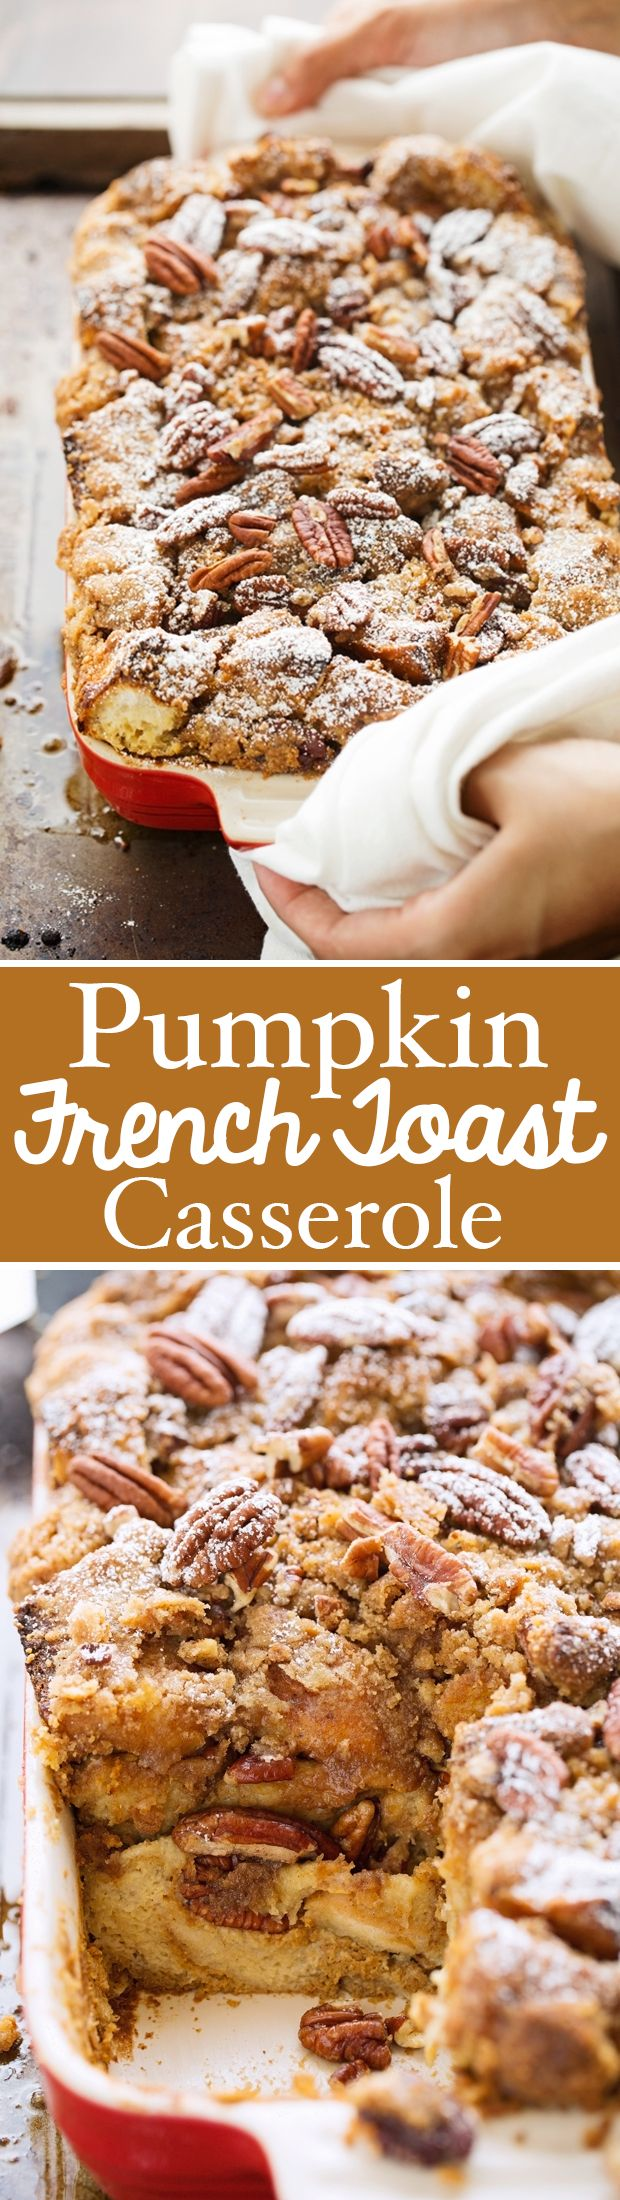 Pumpkin French Toast Casserole - A quick overnight pumpkin french toast…